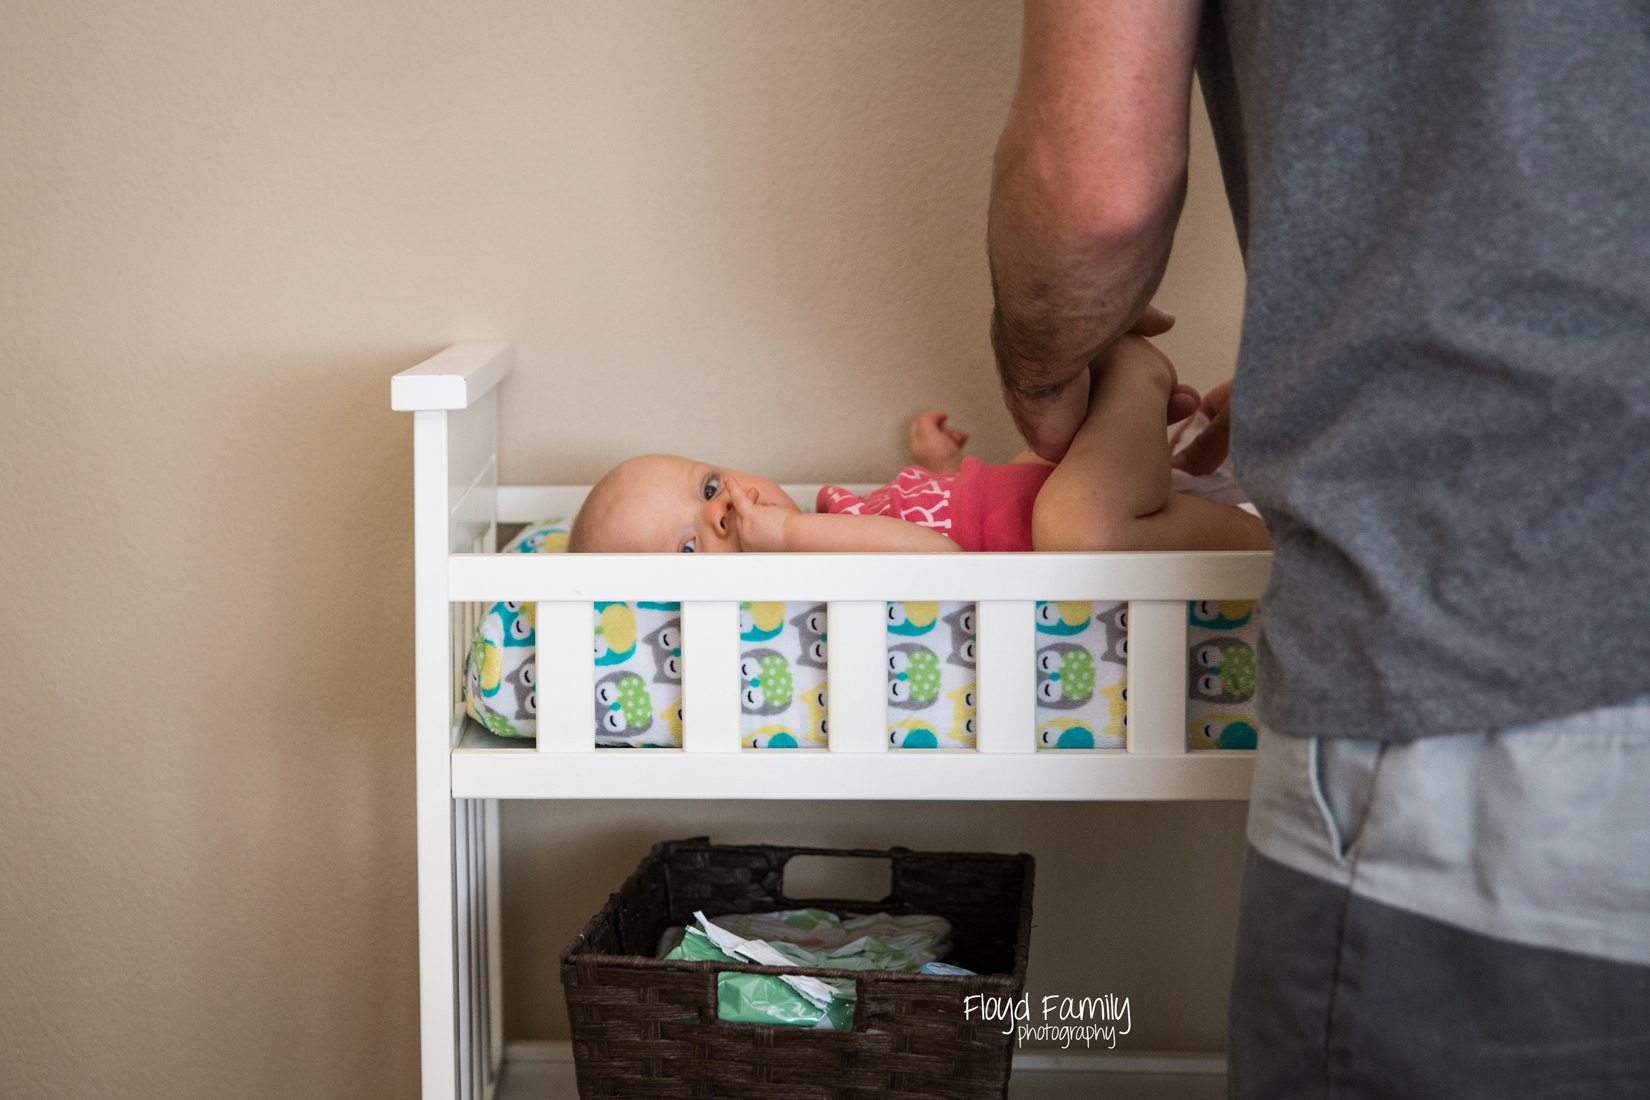 Dad changing baby's diaper at changing table